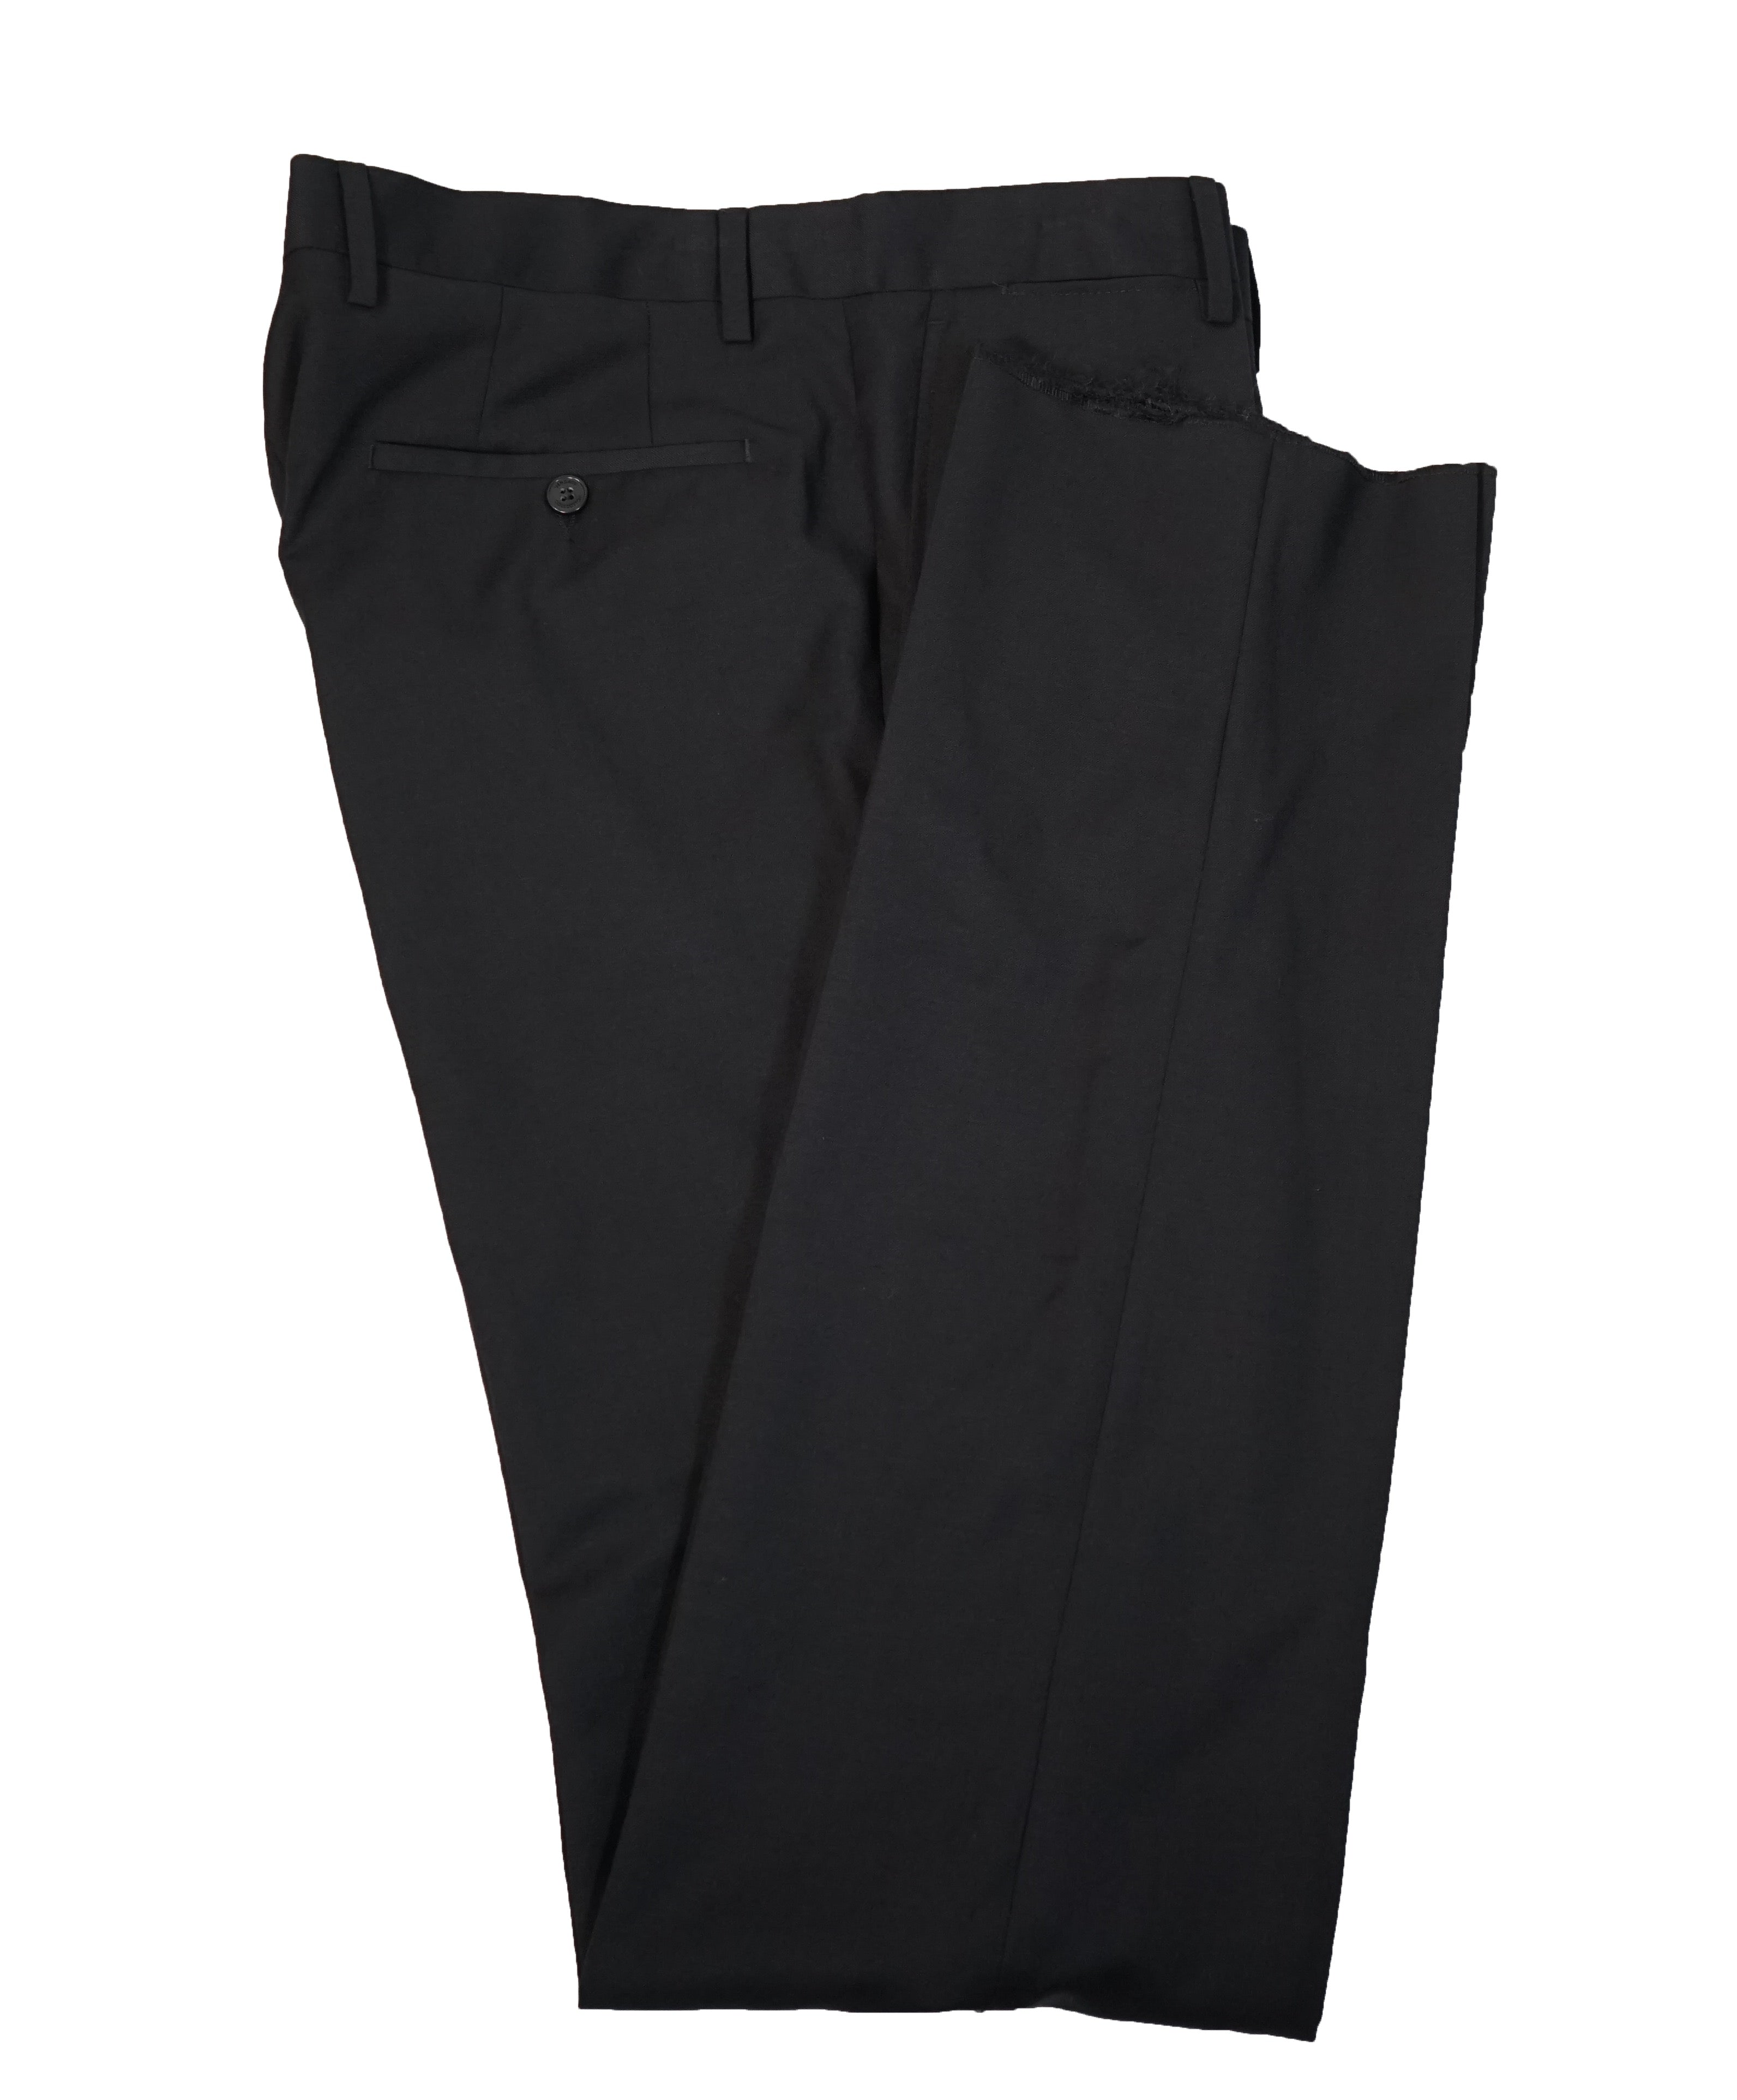 VERSACE COLLECTION - Flat Front Solid Black Dress Pants - 34W